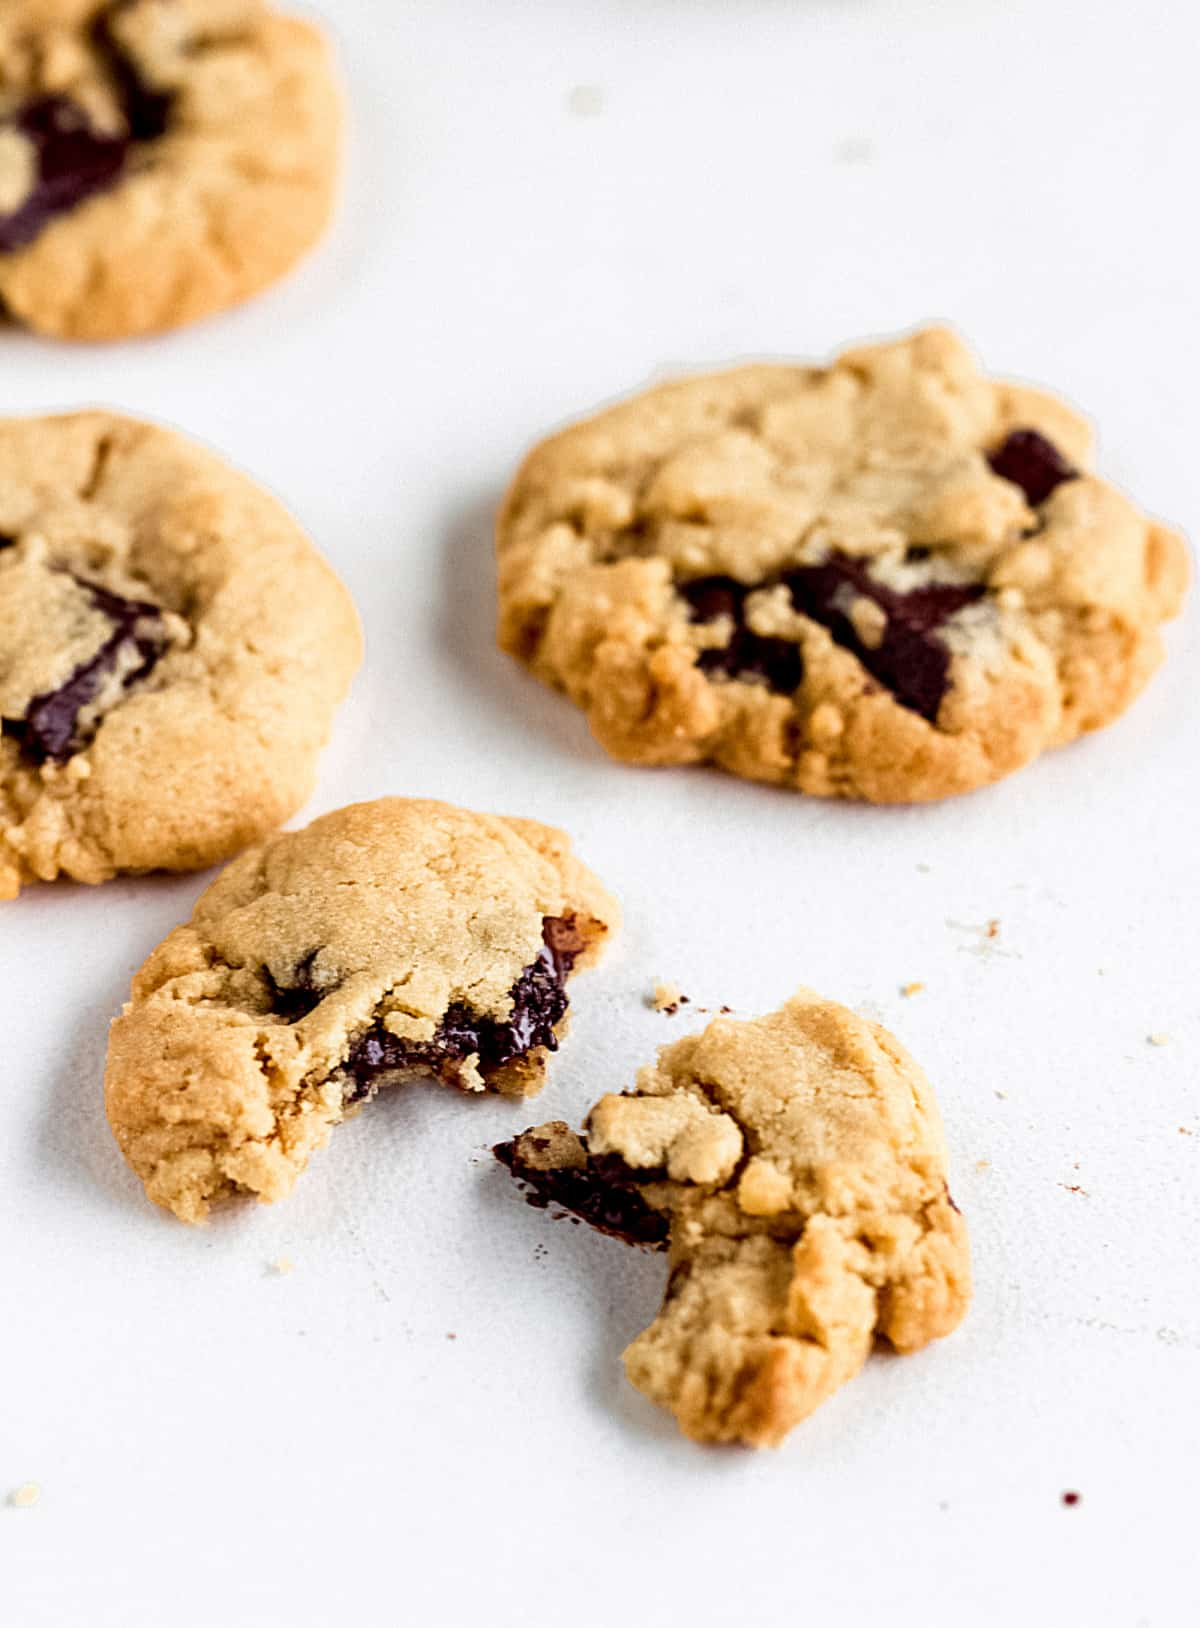 Cookie with chocolate chunks cut in half and whole ones on a white surface